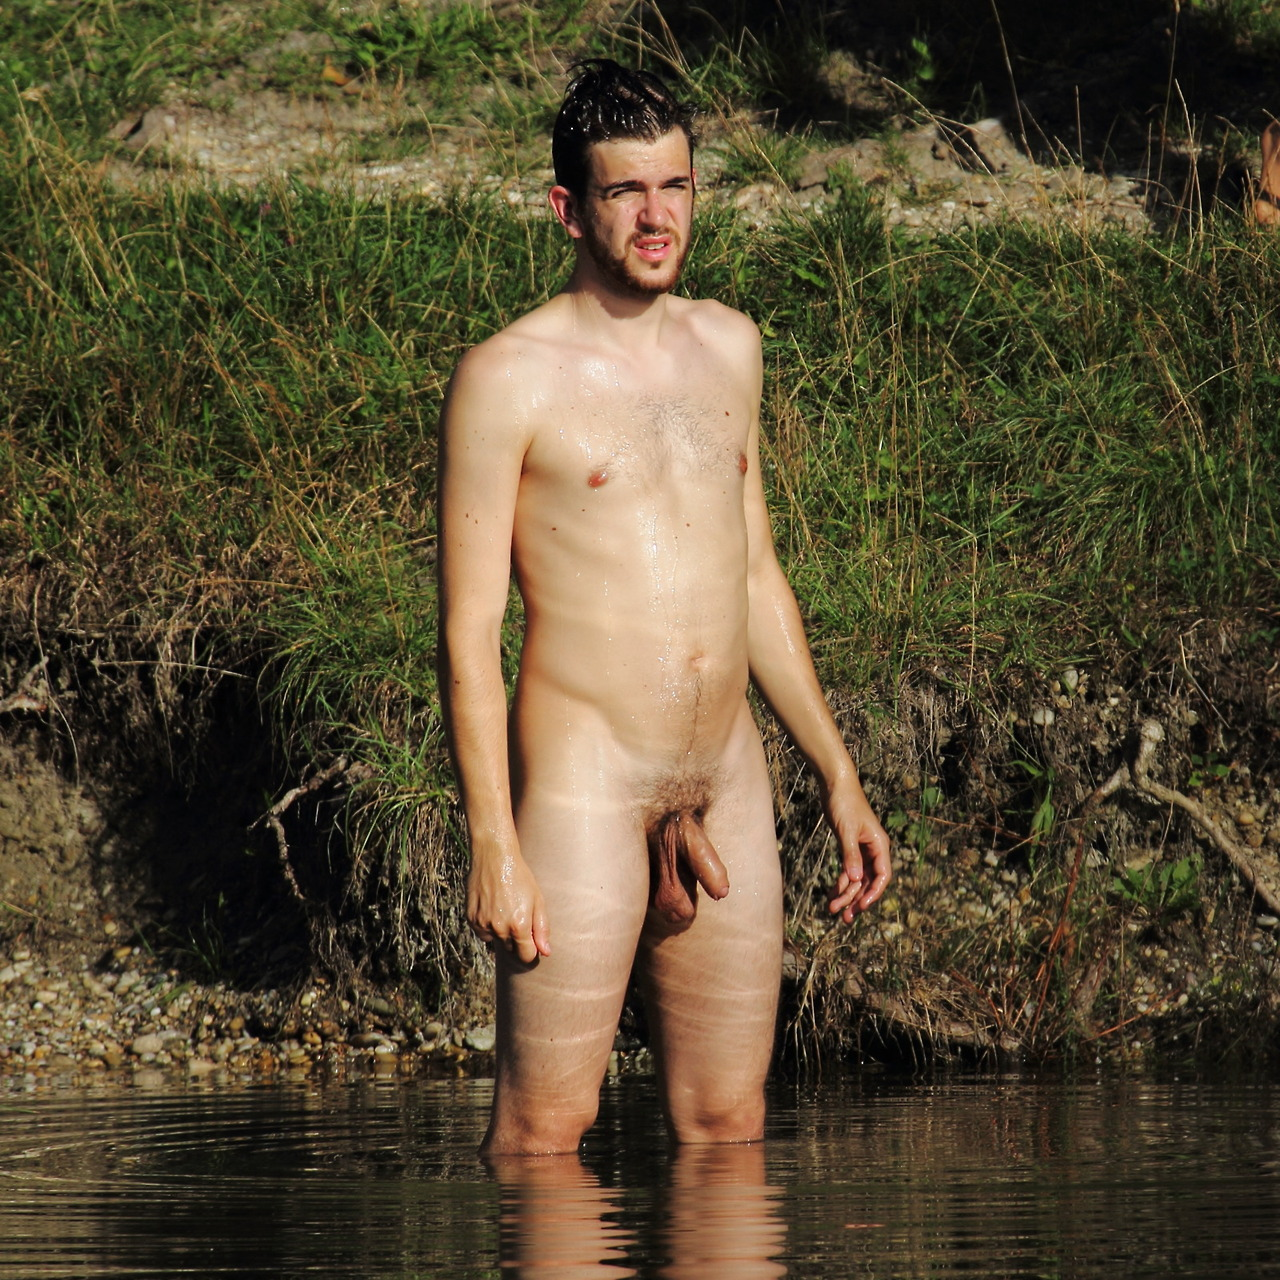 guy naked in lake